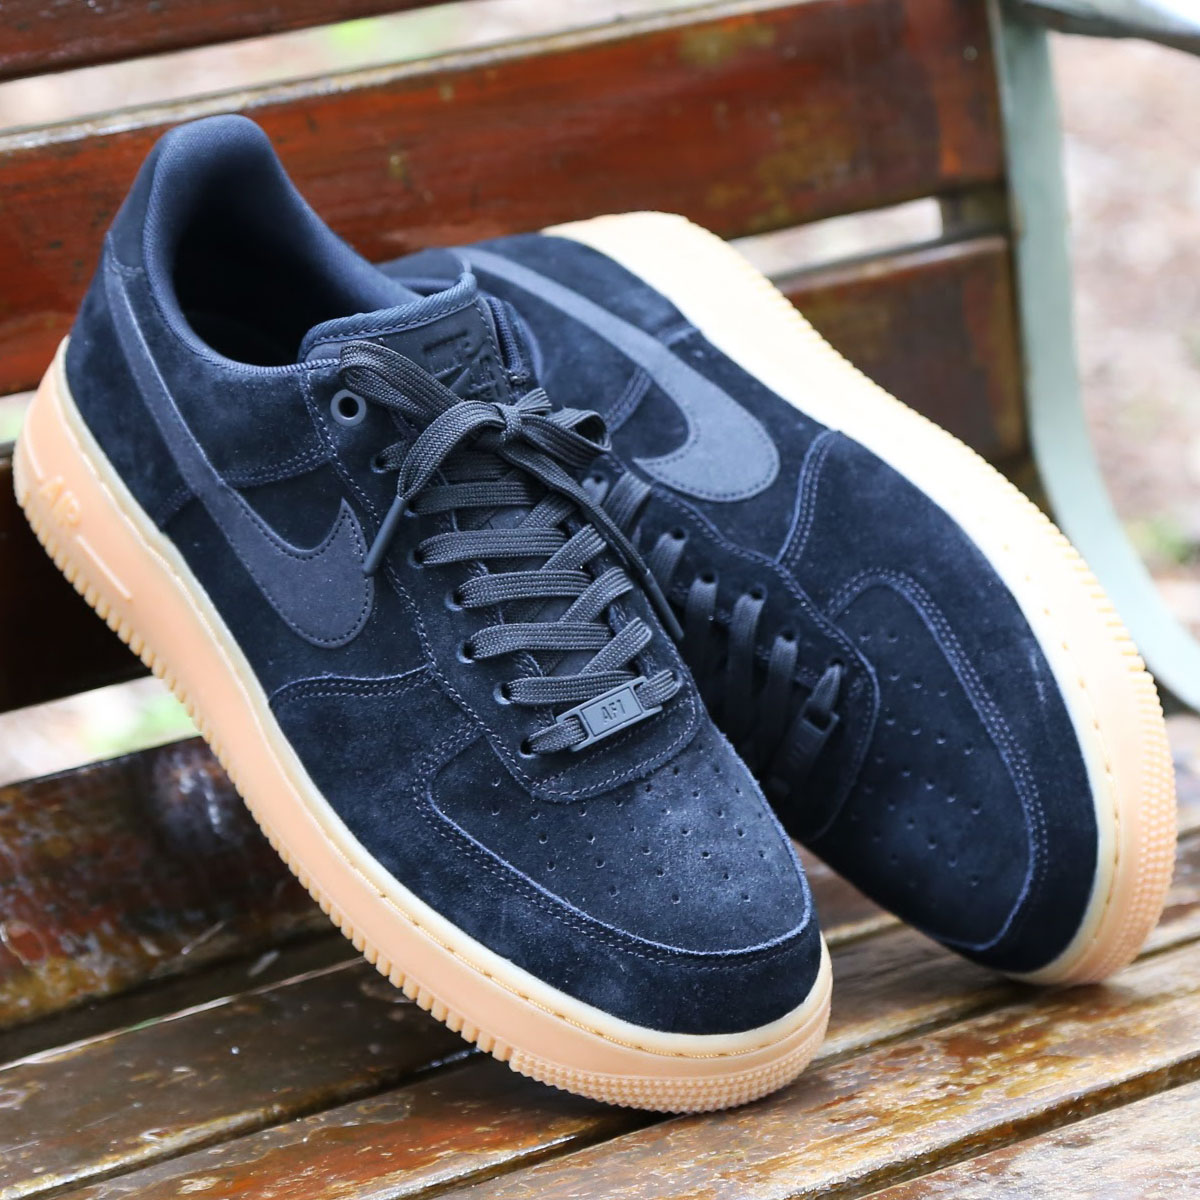 NIKE AIR FORCE 1 '07 LV8 SUEDE(ナイキ エア フォース 1 07 LV8 スエード)BLACK/BLACK-GUM MED BROWN-IVORY【メンズ スニーカー】CRYOVR